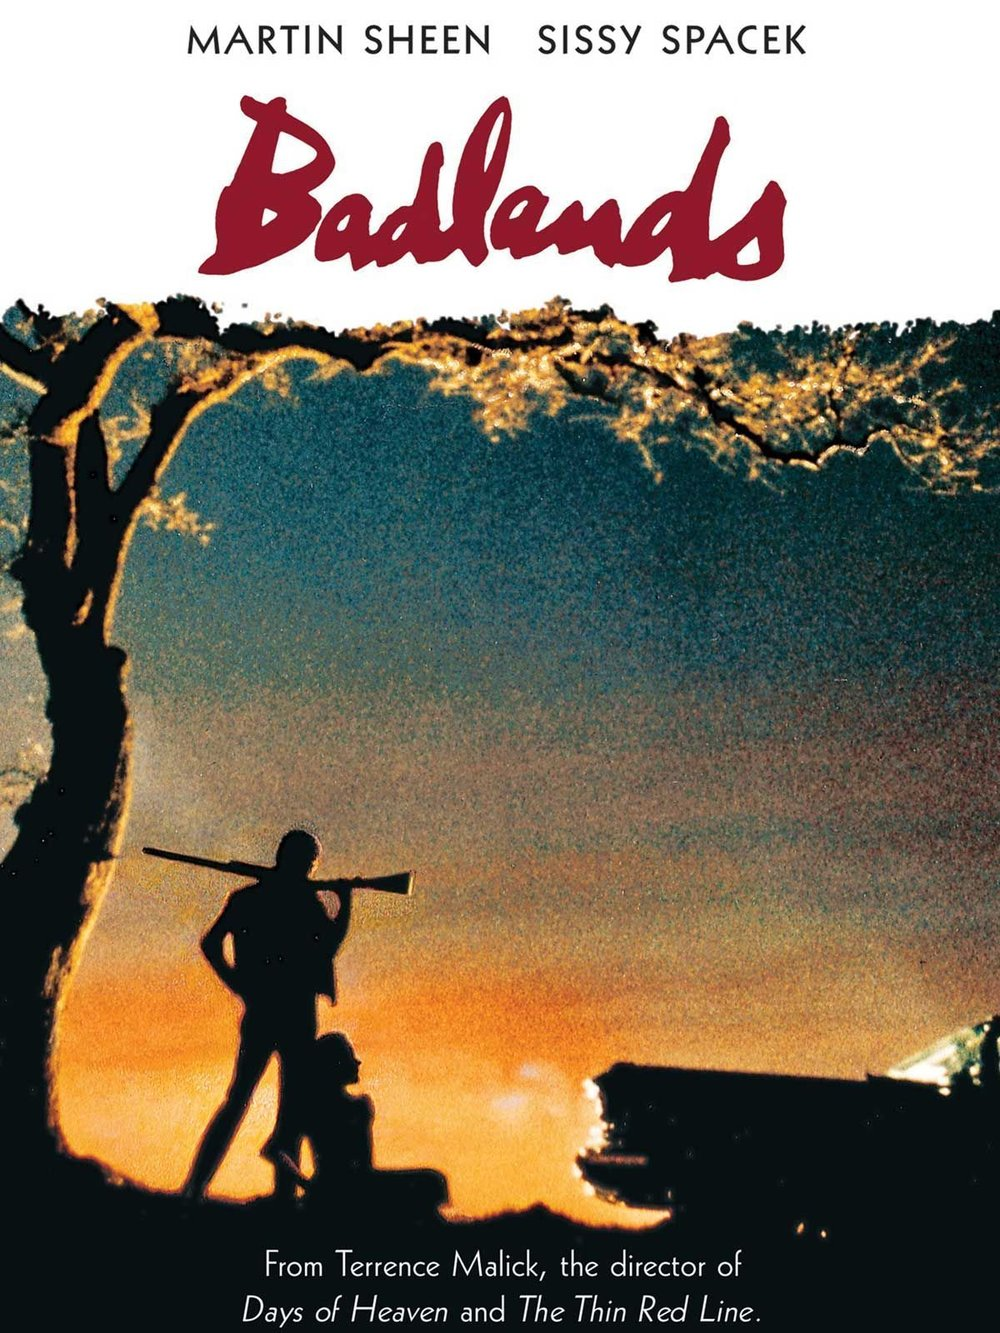 Badlands (1973) - Directed by: Terrence MalickStarring: Martin Sheen, Sissy Spacek, Warren OatesRated: PGRunning Time: 1 h 34 mTMM Score: 5 stars out of 5STRENGTHS: Writing, Directing, Acting, CinematographyWEAKNESSES: -